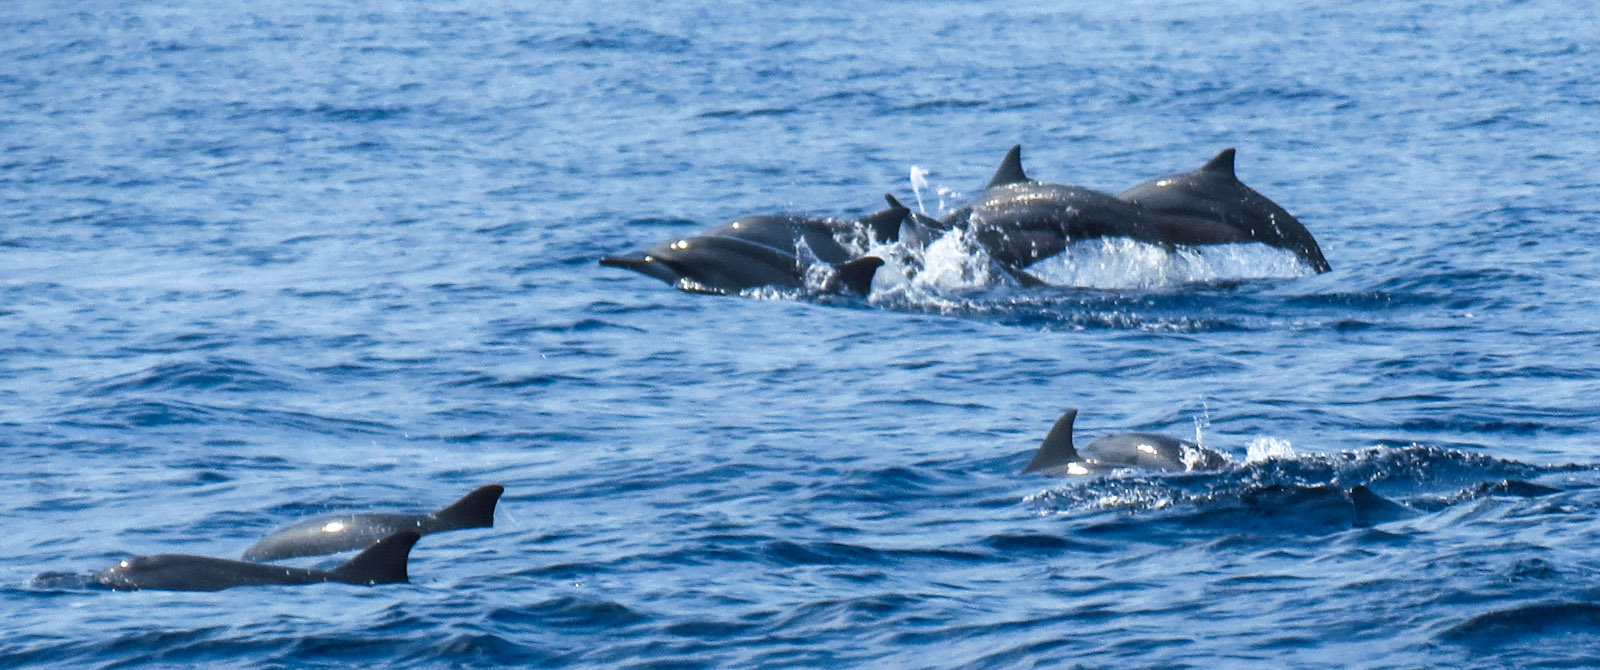 Whale Watching in Mirissa – capture these majestic mammals